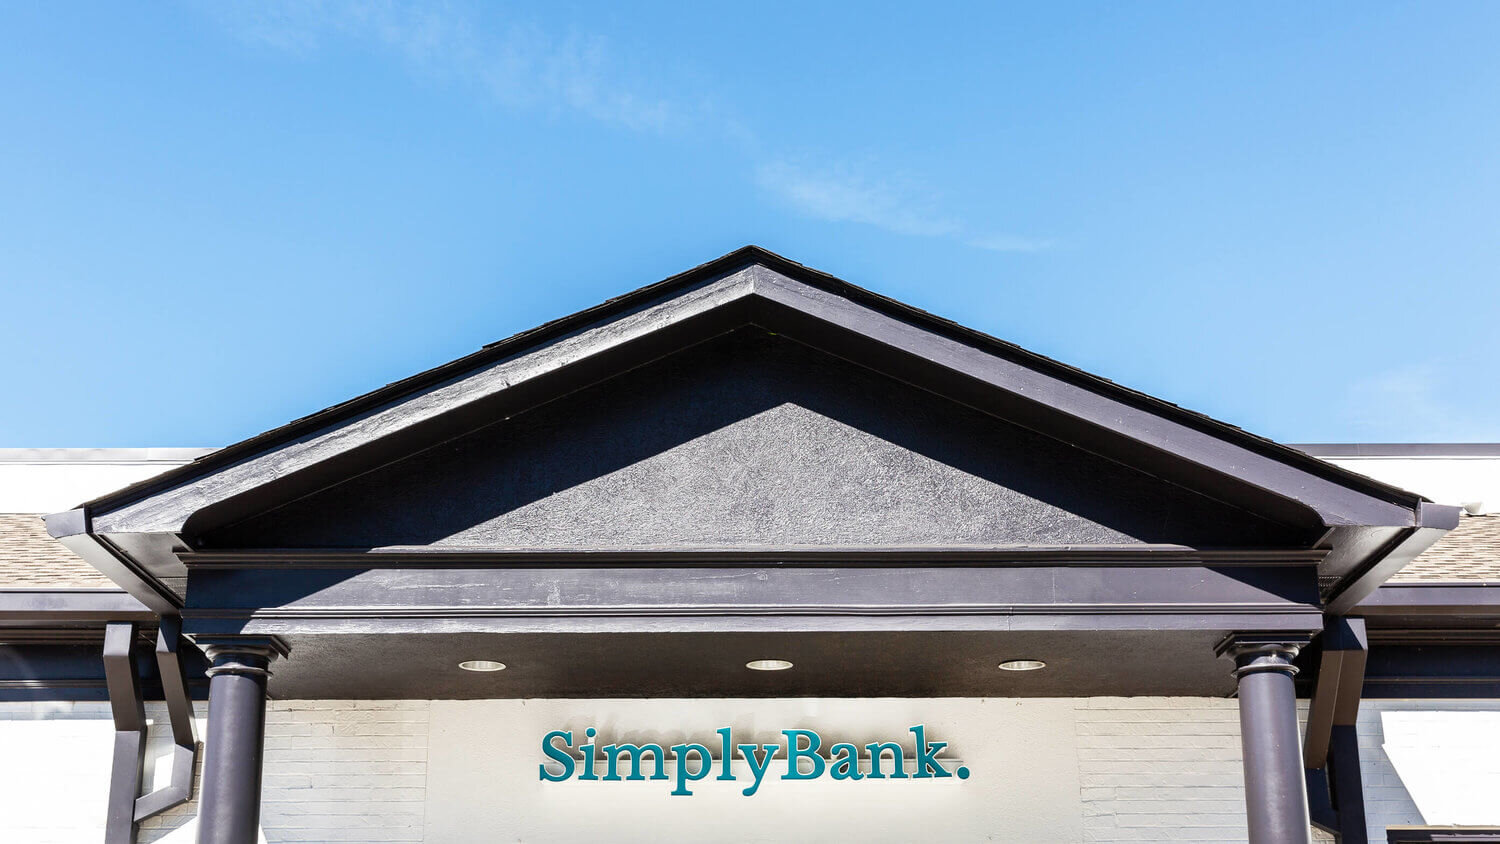 simply-bank-building-signage.jpg